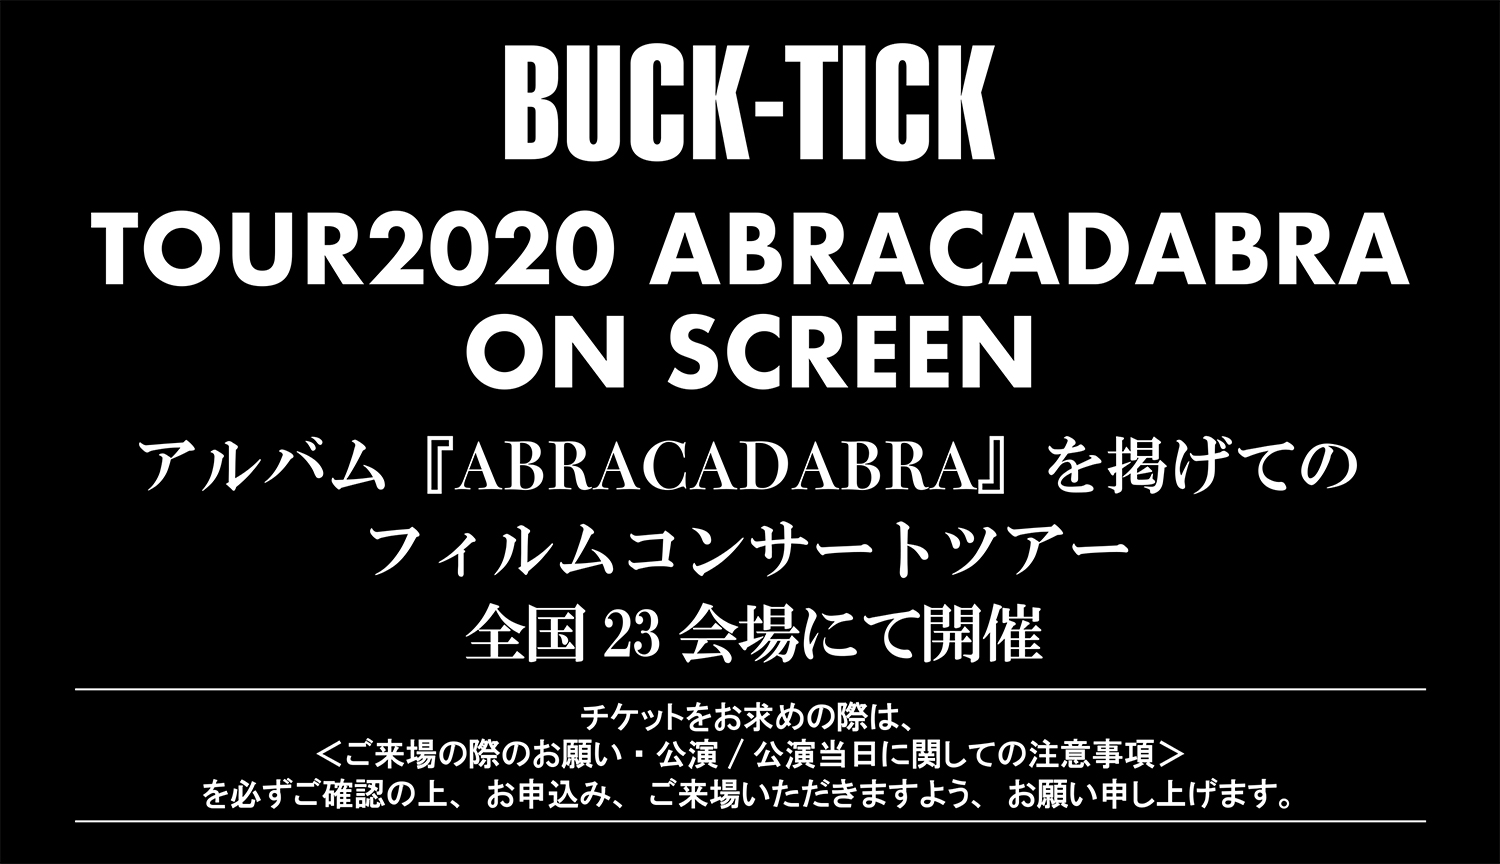 TOUR2020 ABRACADABRA ON SCREEN